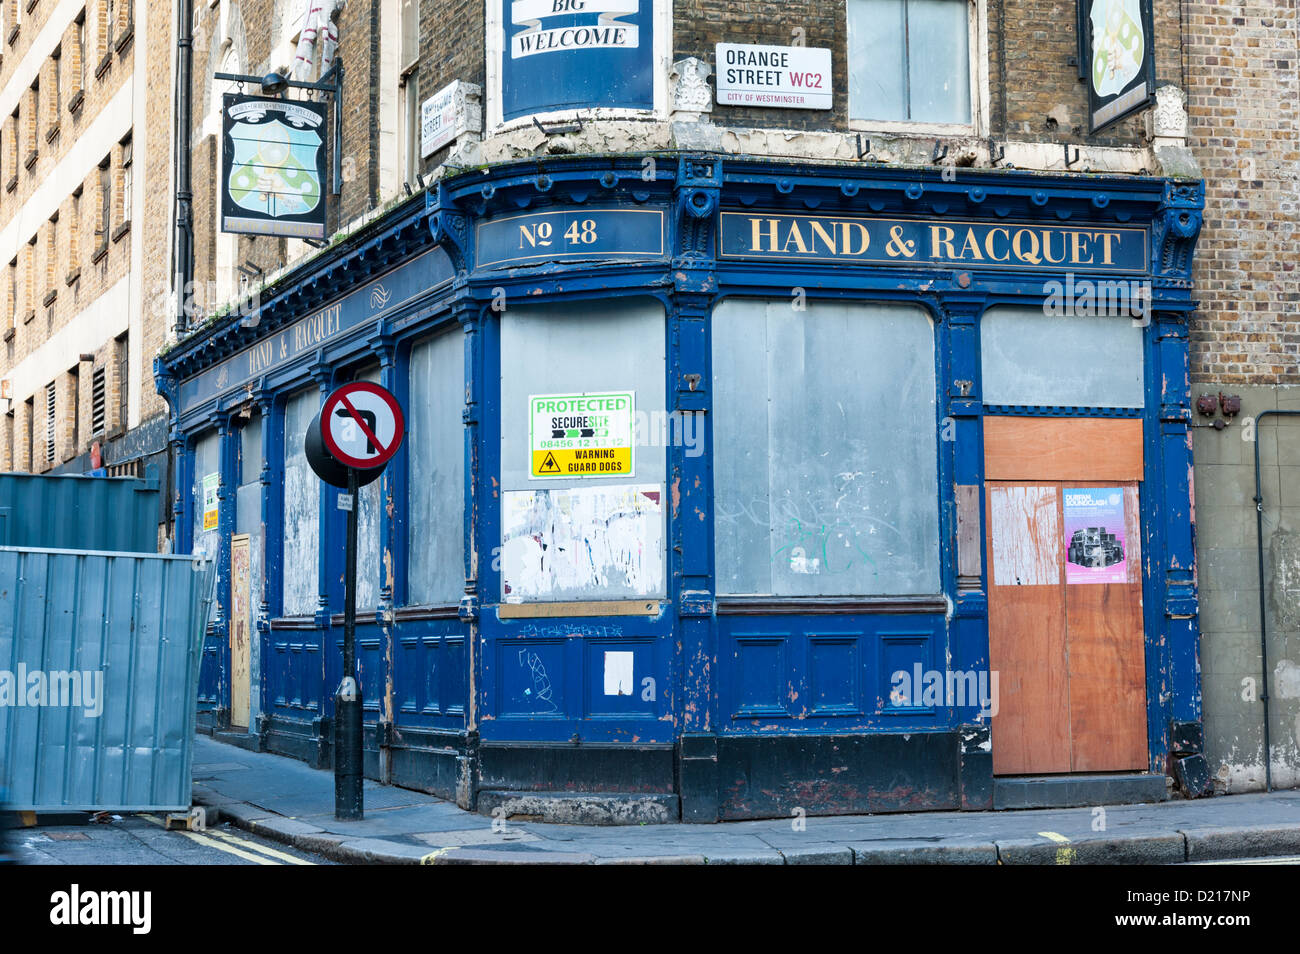 The disused Hand and Racquet pub building Orange Street and Wardour Street London UK - Stock Image